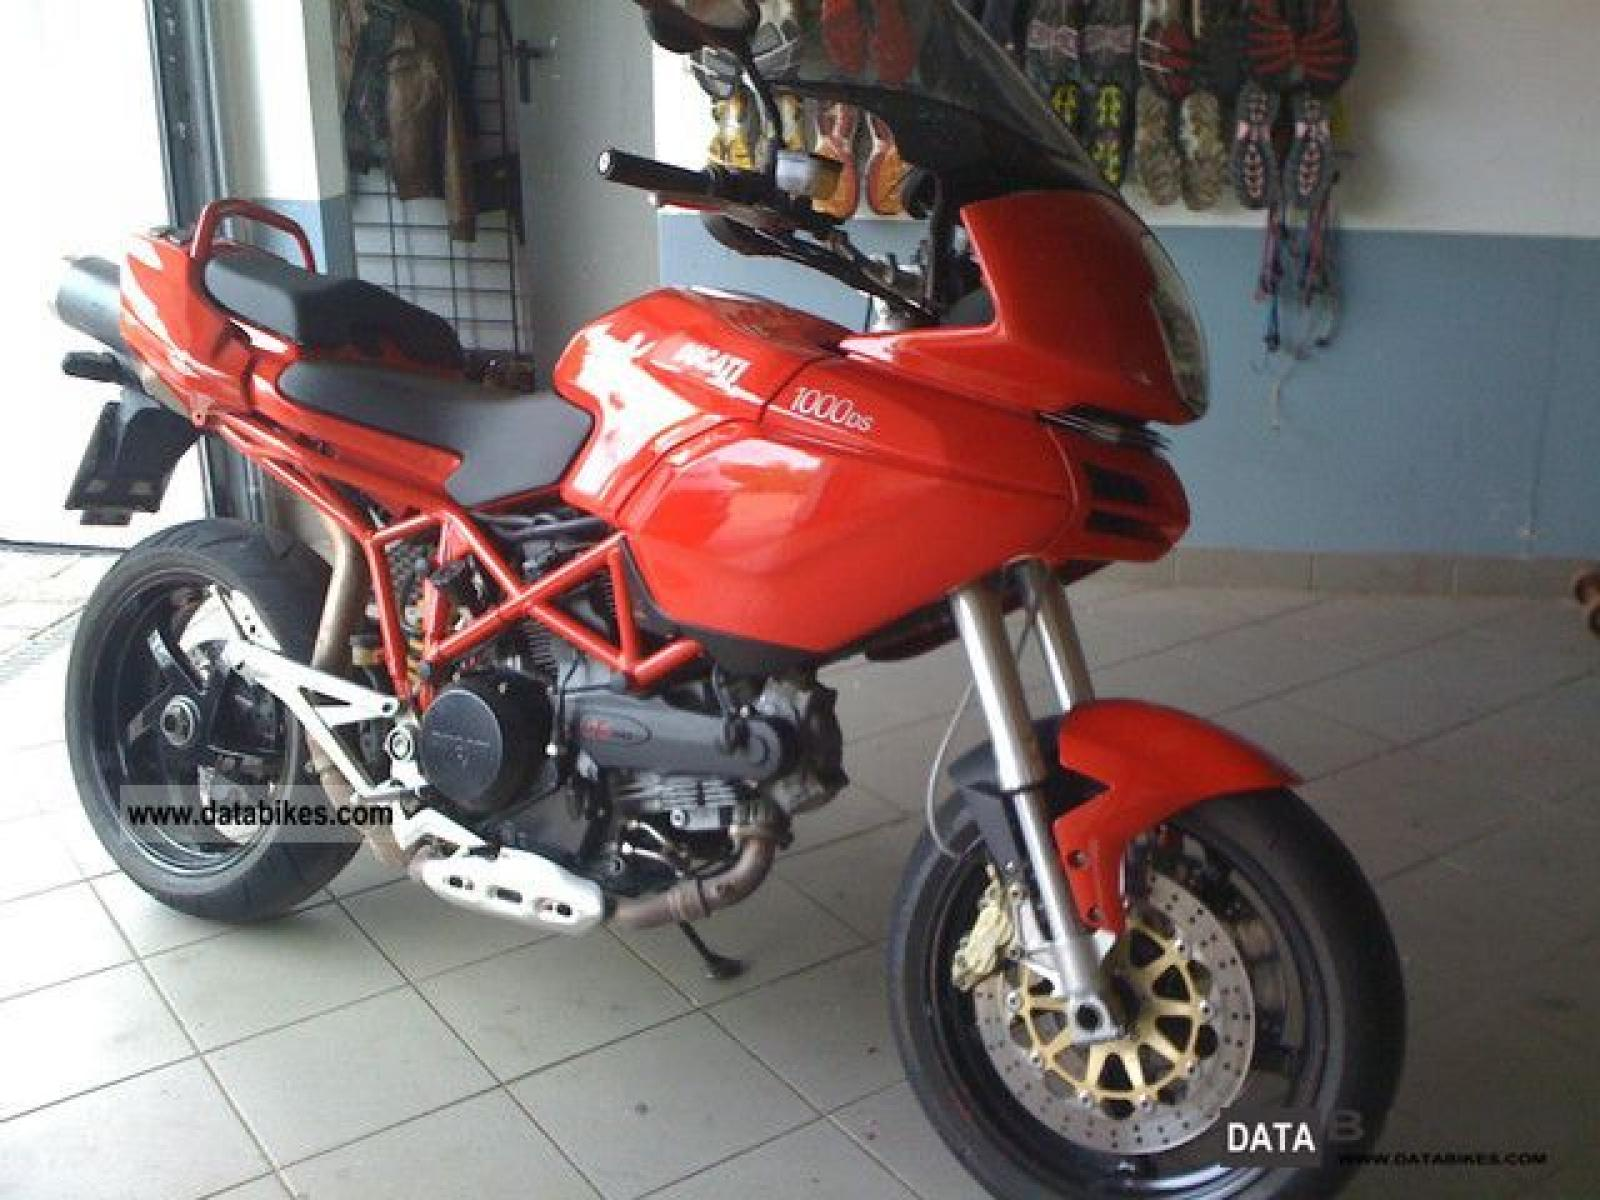 2003 ducati multistrada 1000 ds moto zombdrive com. Black Bedroom Furniture Sets. Home Design Ideas